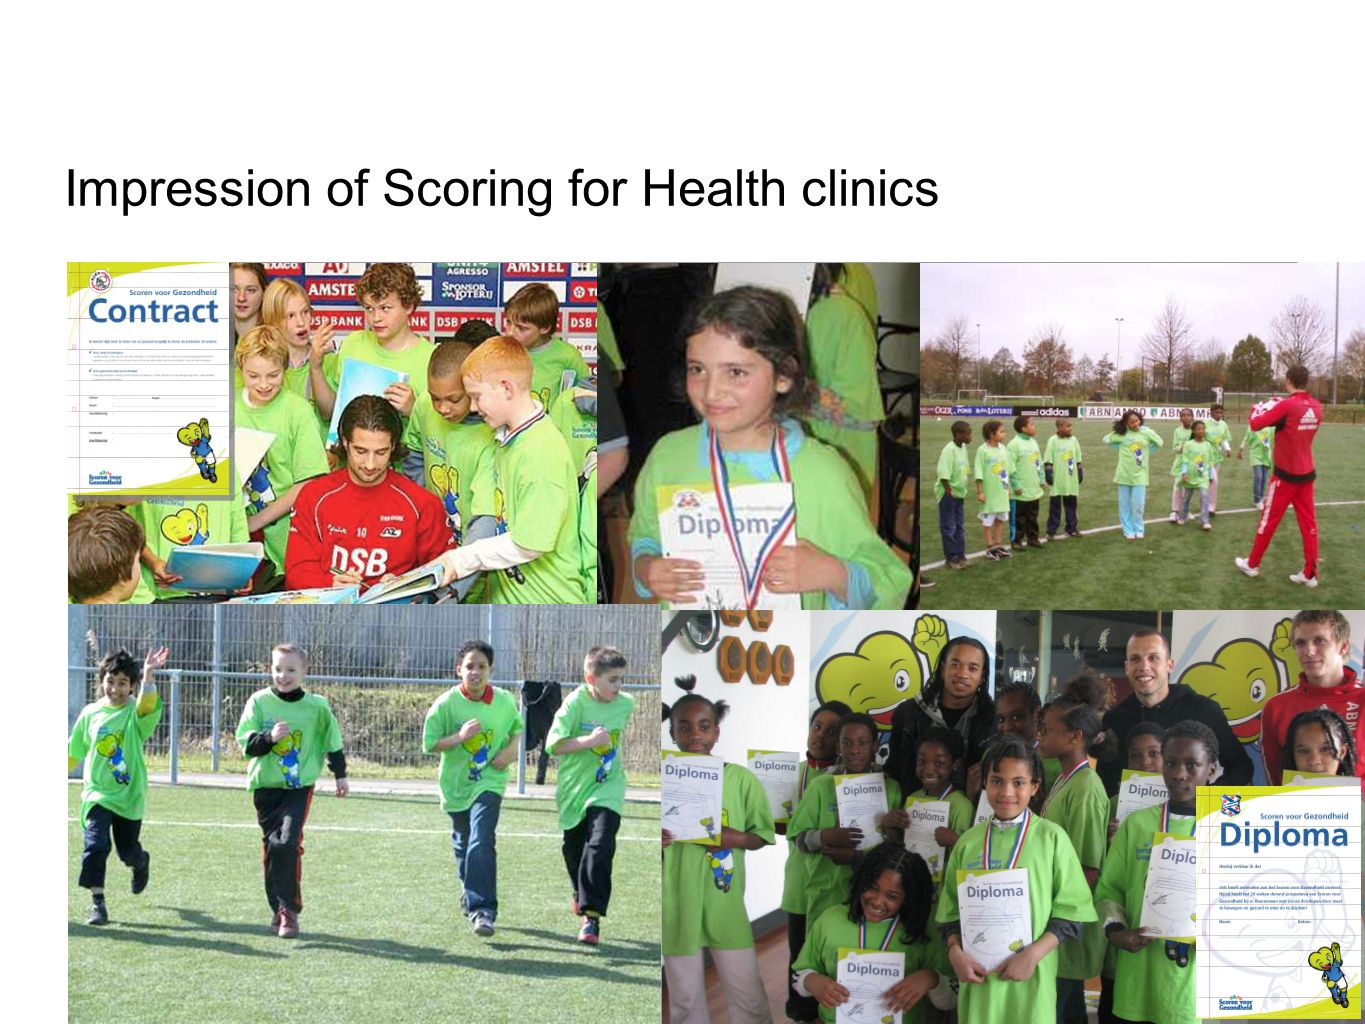 Impression of Scoring for Health clinics